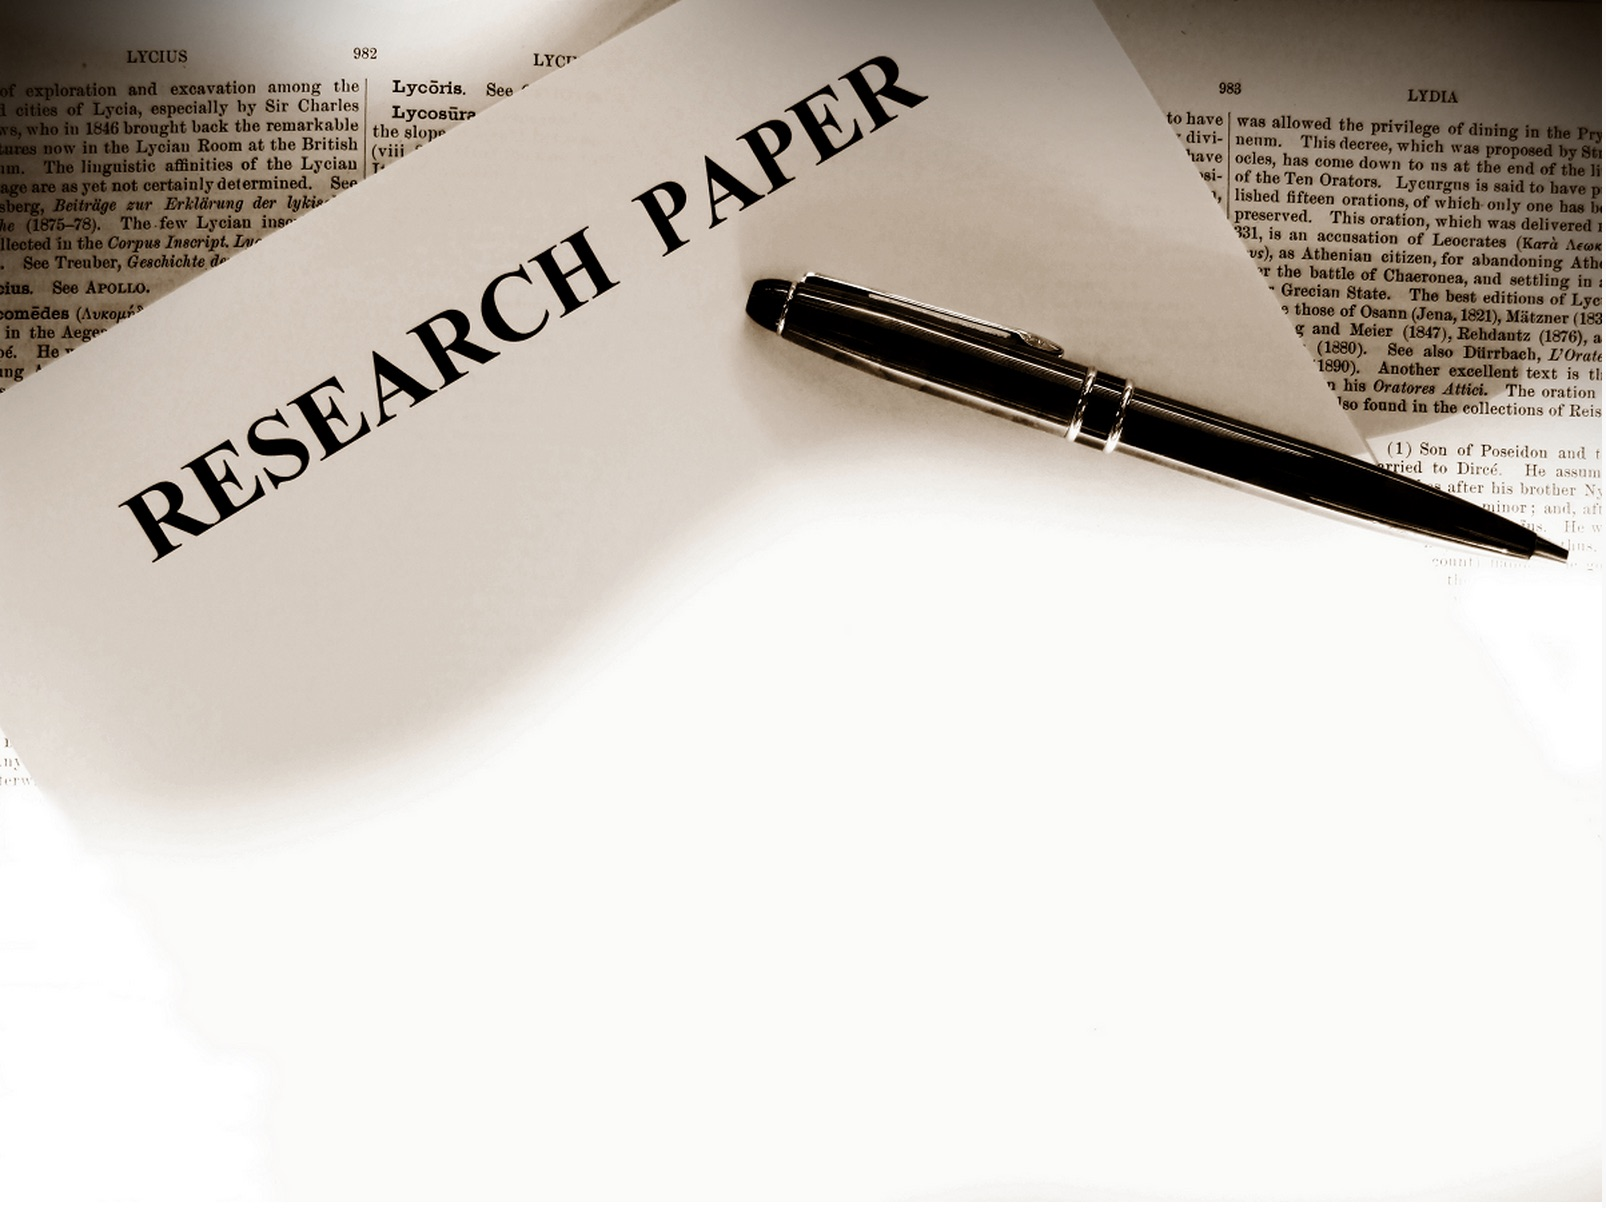 a research paper about wiretapping and how it affects us The central position of this paper is that us lawmakers and courts have reacted  to  though the olmstead case dealt with electronic eavesdropping by the  police, its  however, more empirical research is needed to measure the  effects of.